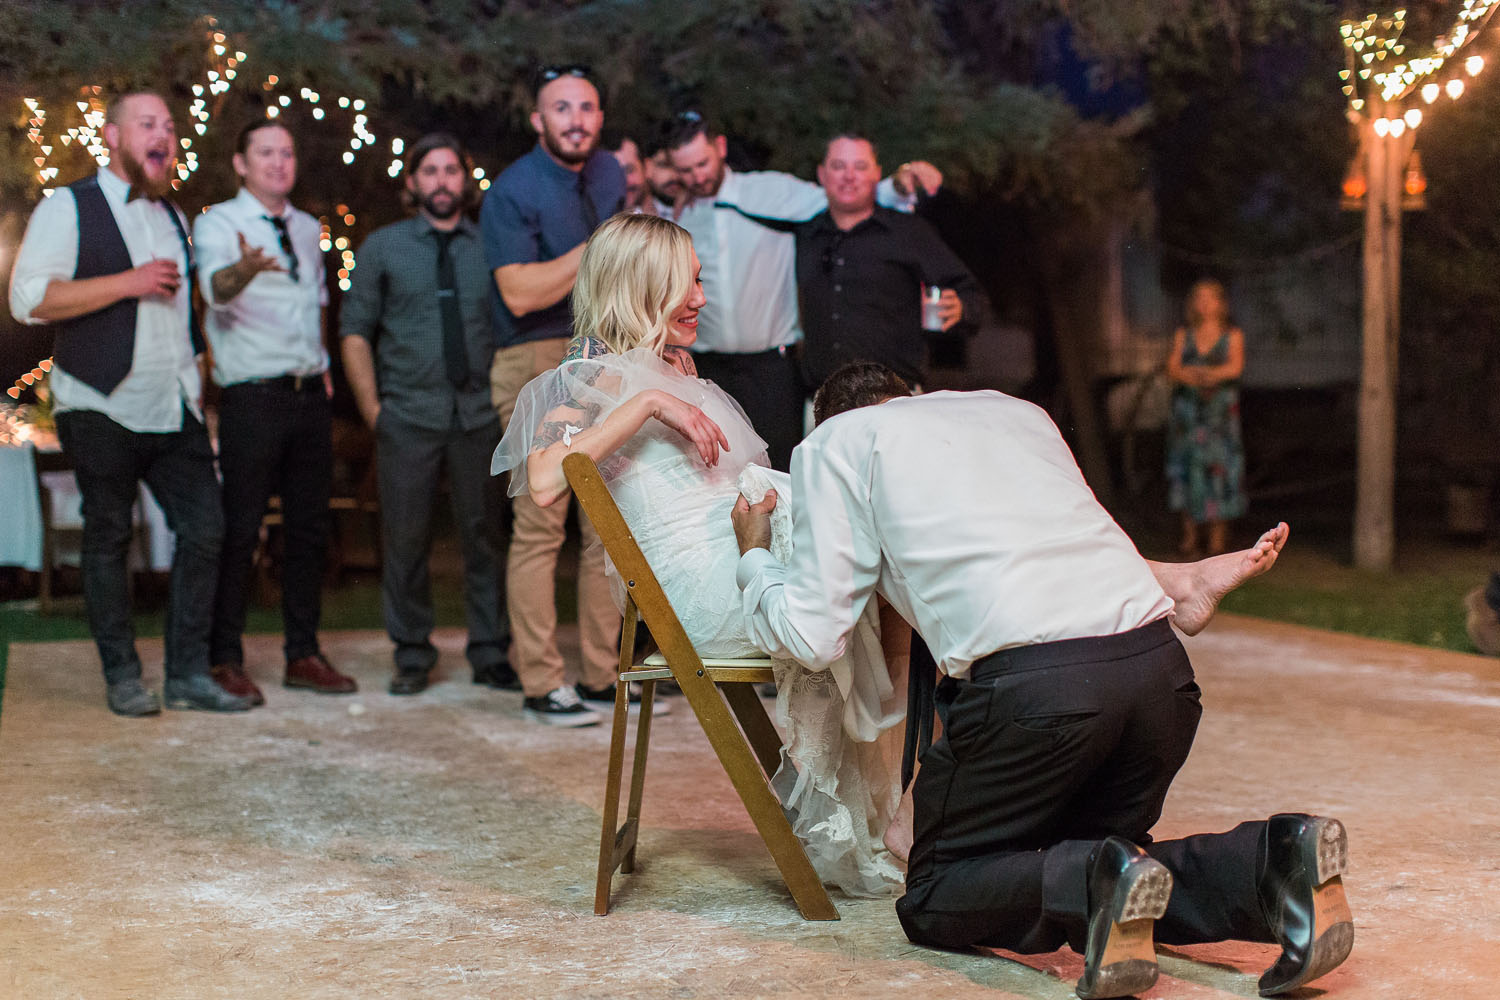 The Photege - Elegant Boho Wedding on Suburu Farm in Bakersfield California- Cassie and Darin Buoni-3092